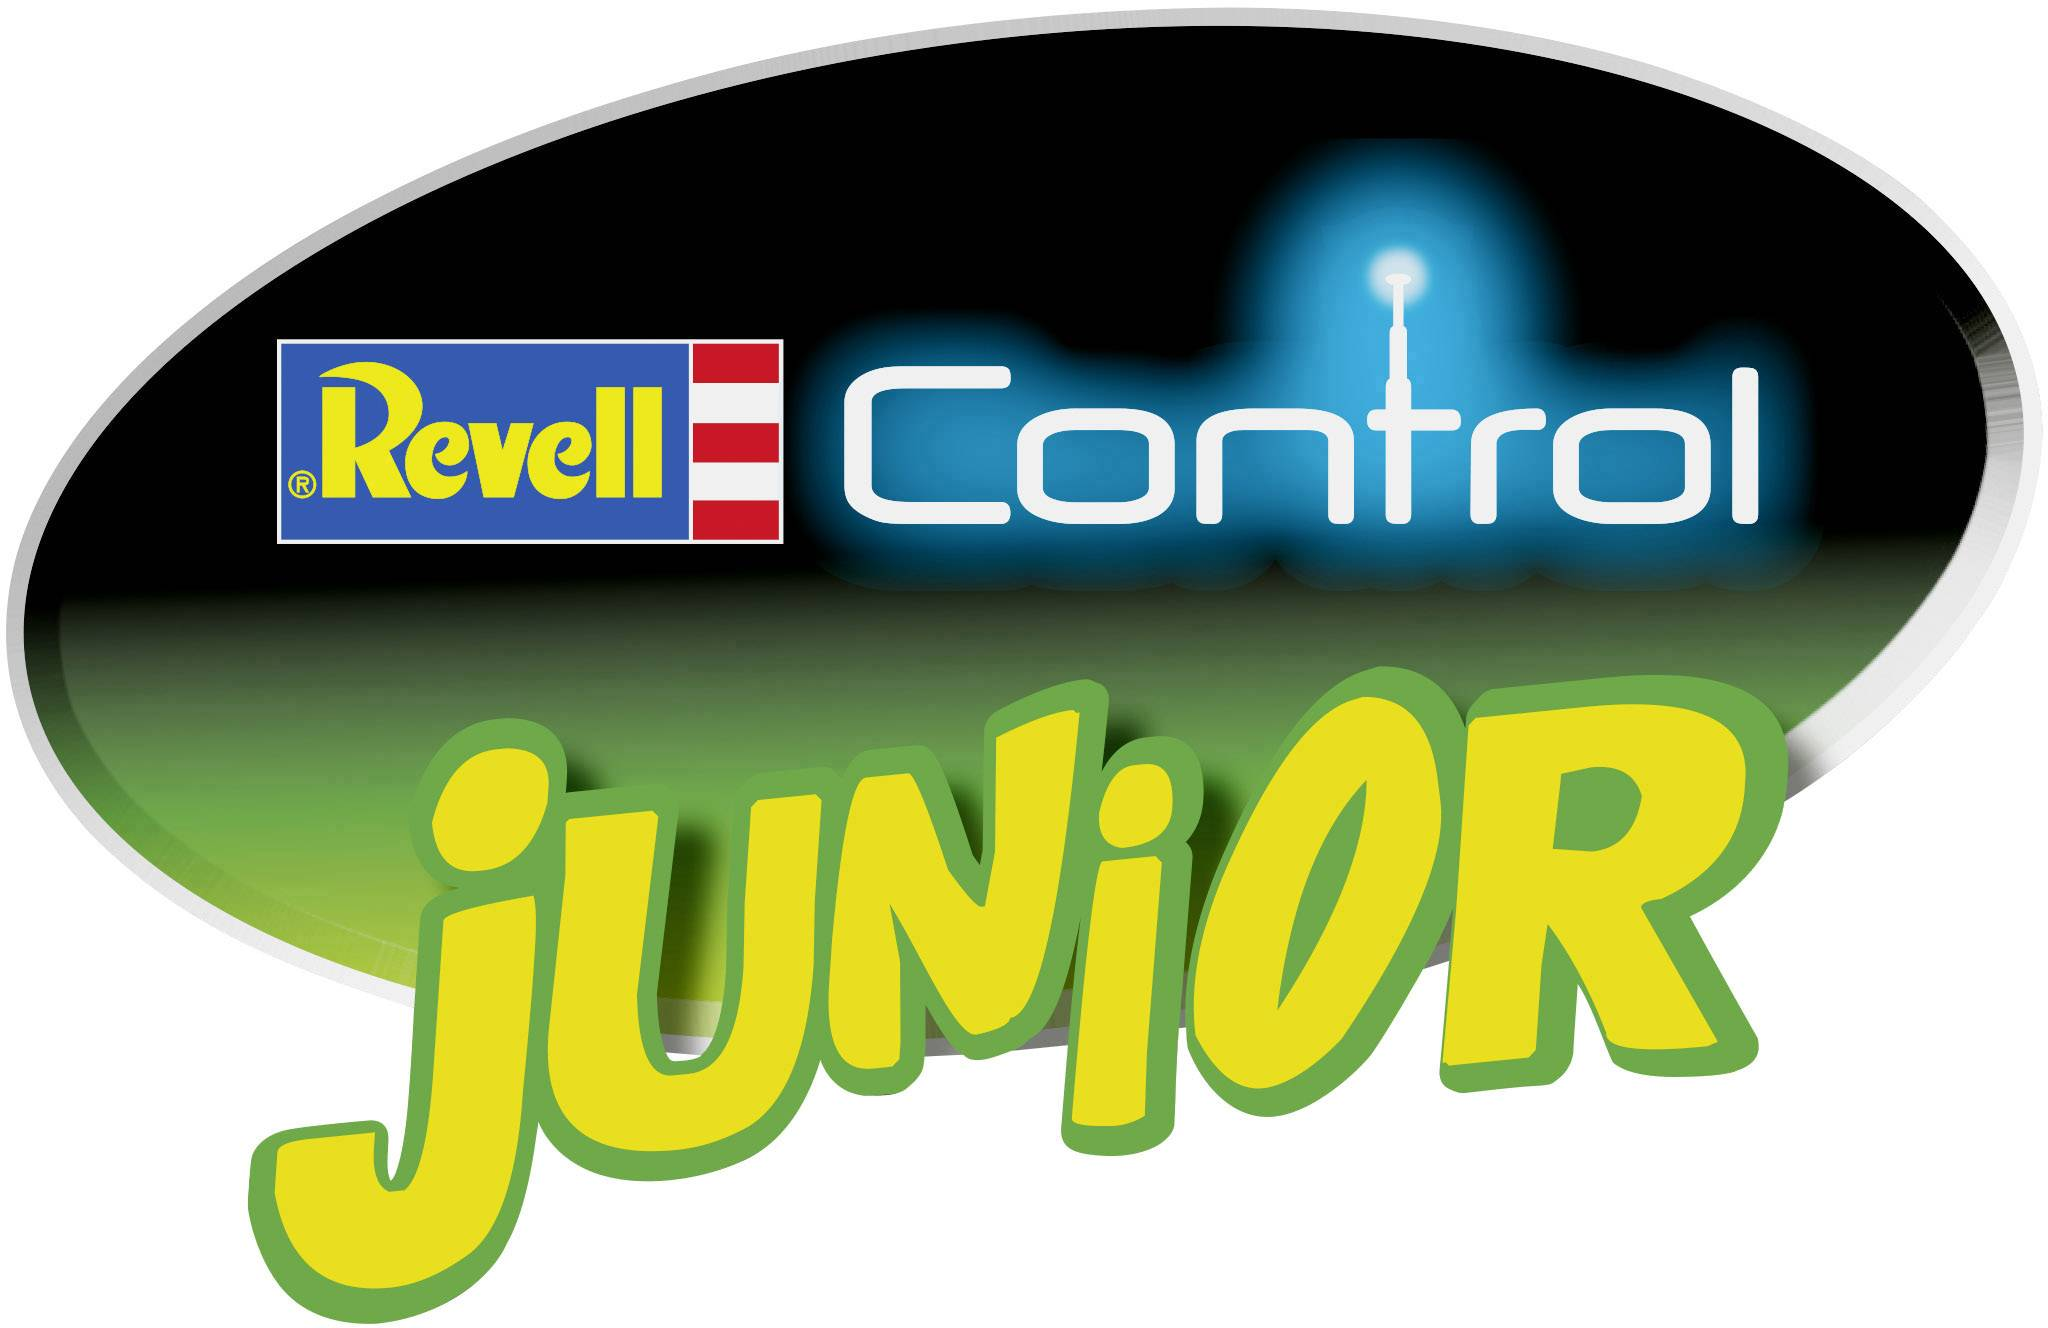 Revell Control Junior